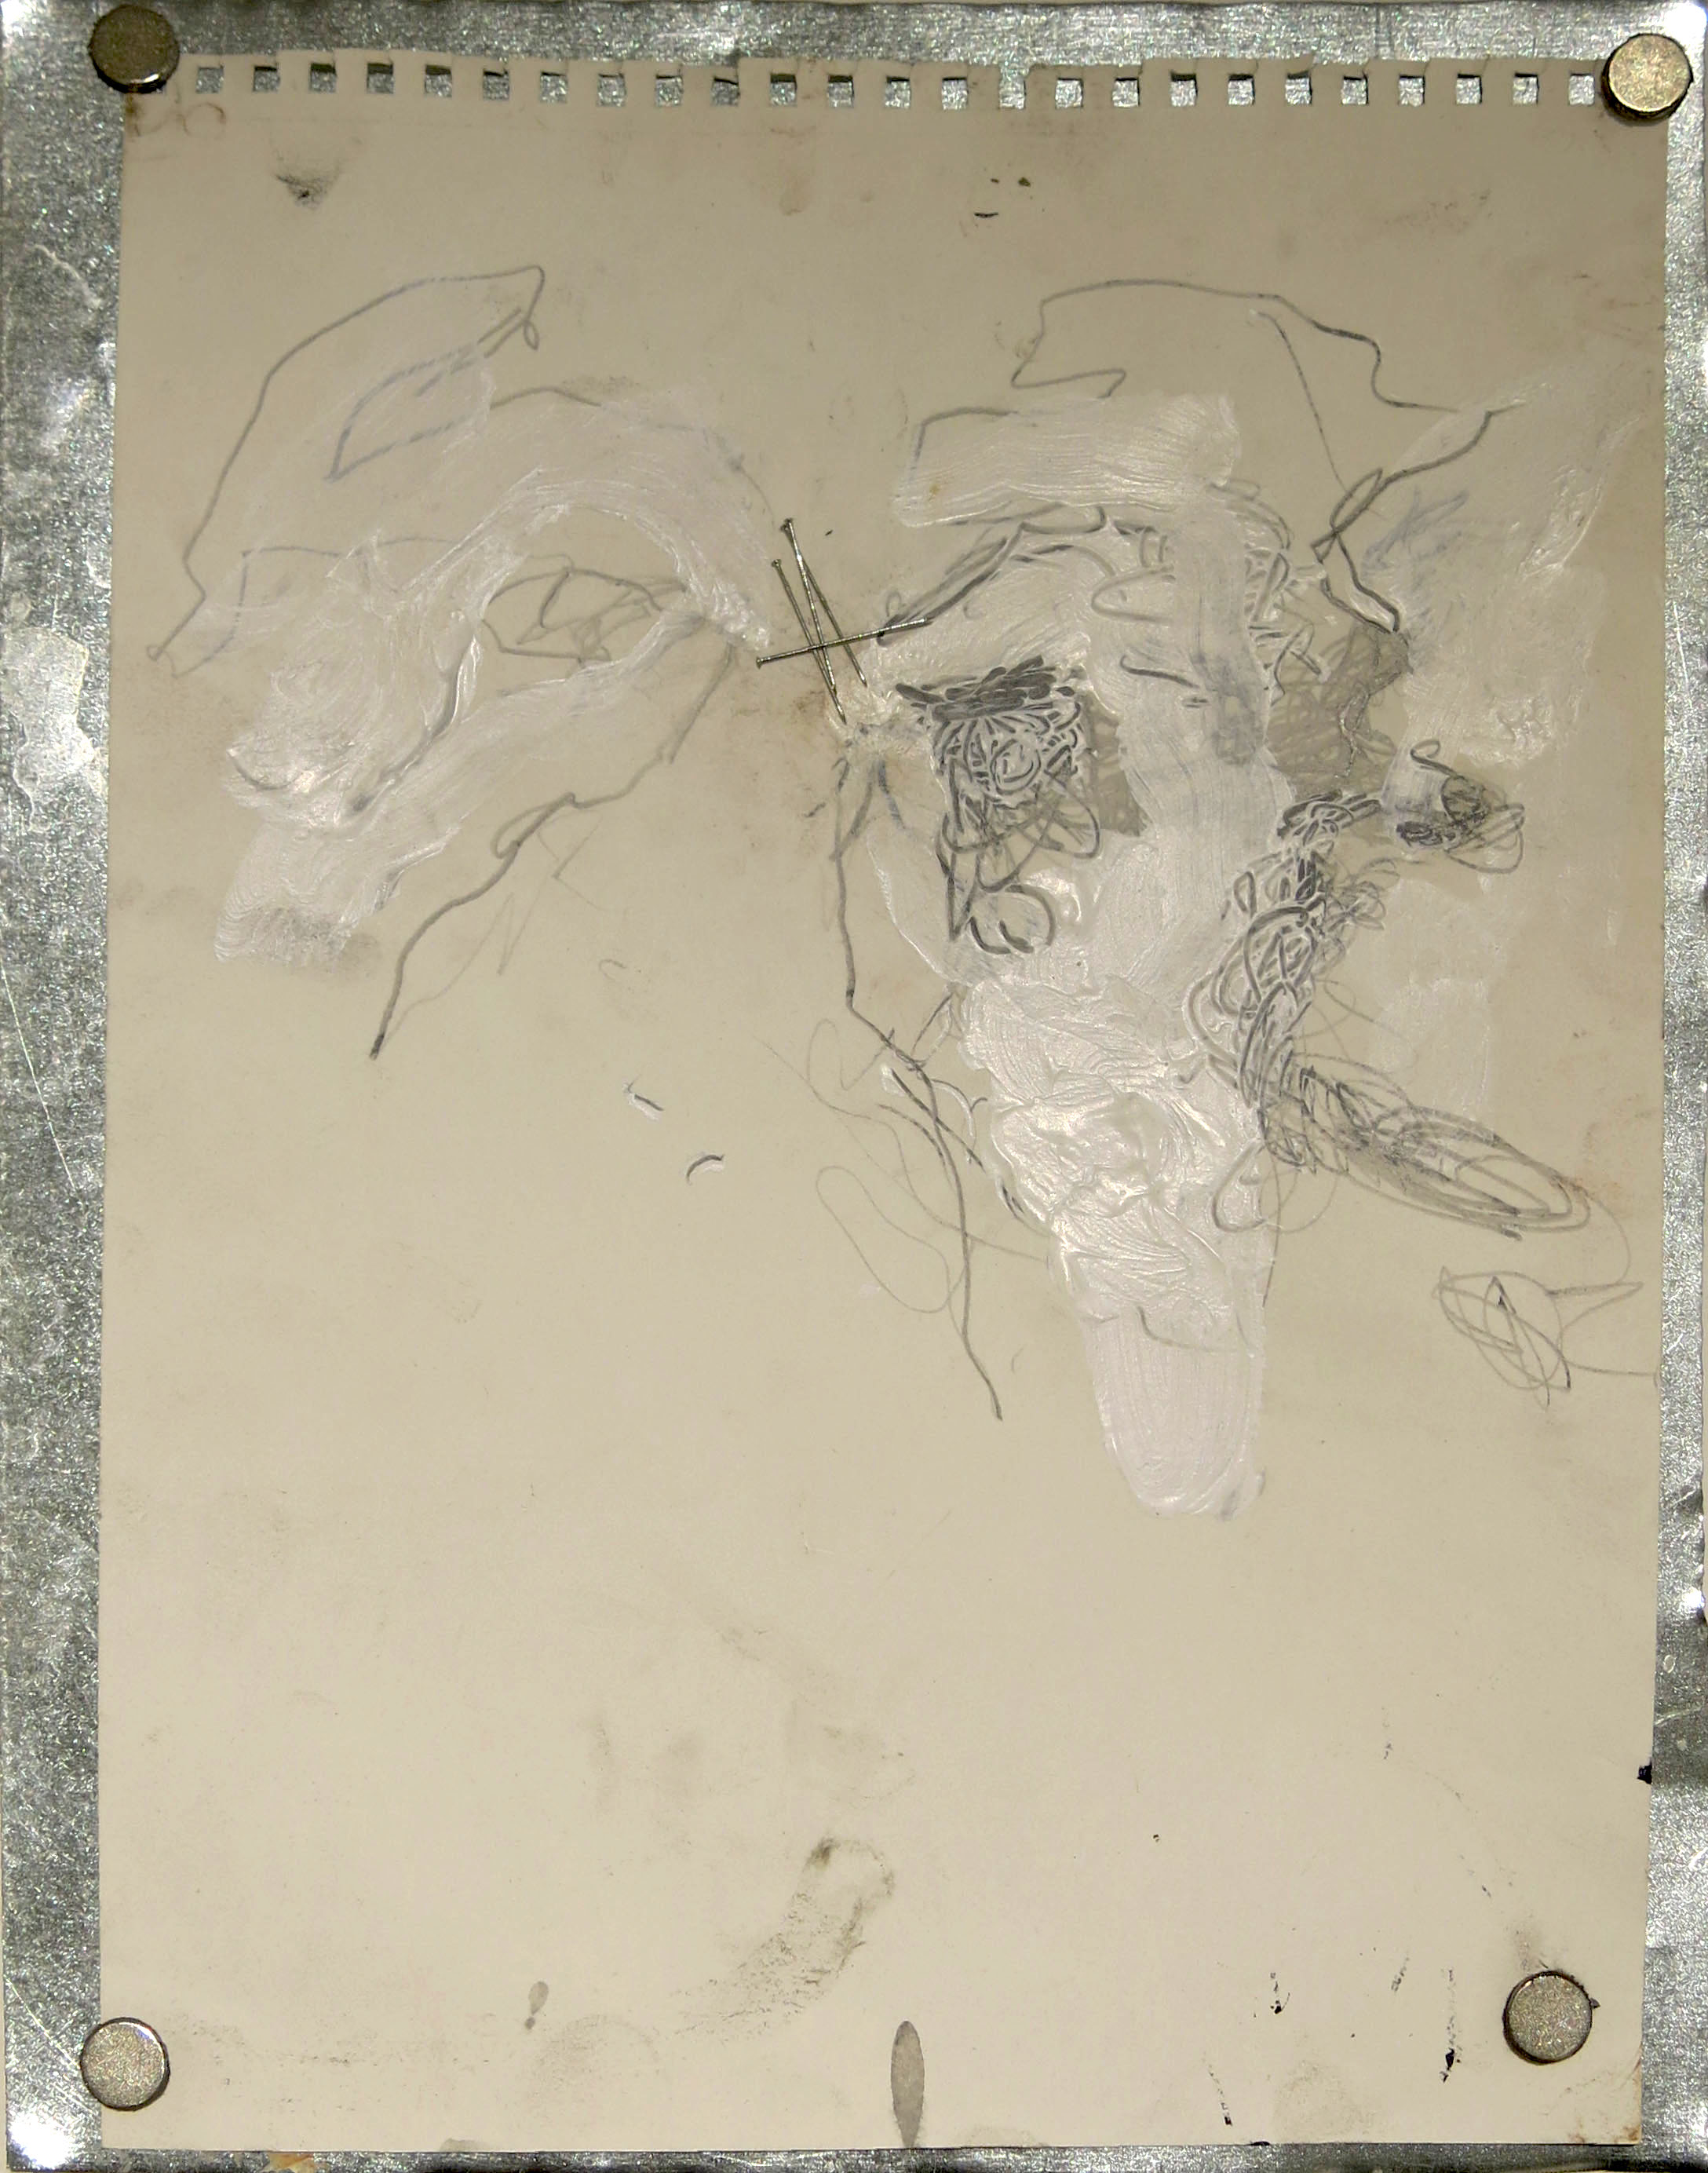 June Leaf,  Hands with Pins,  2014-2015, graphite, acrylic, needles on paper on tin, 30h x 40w in.